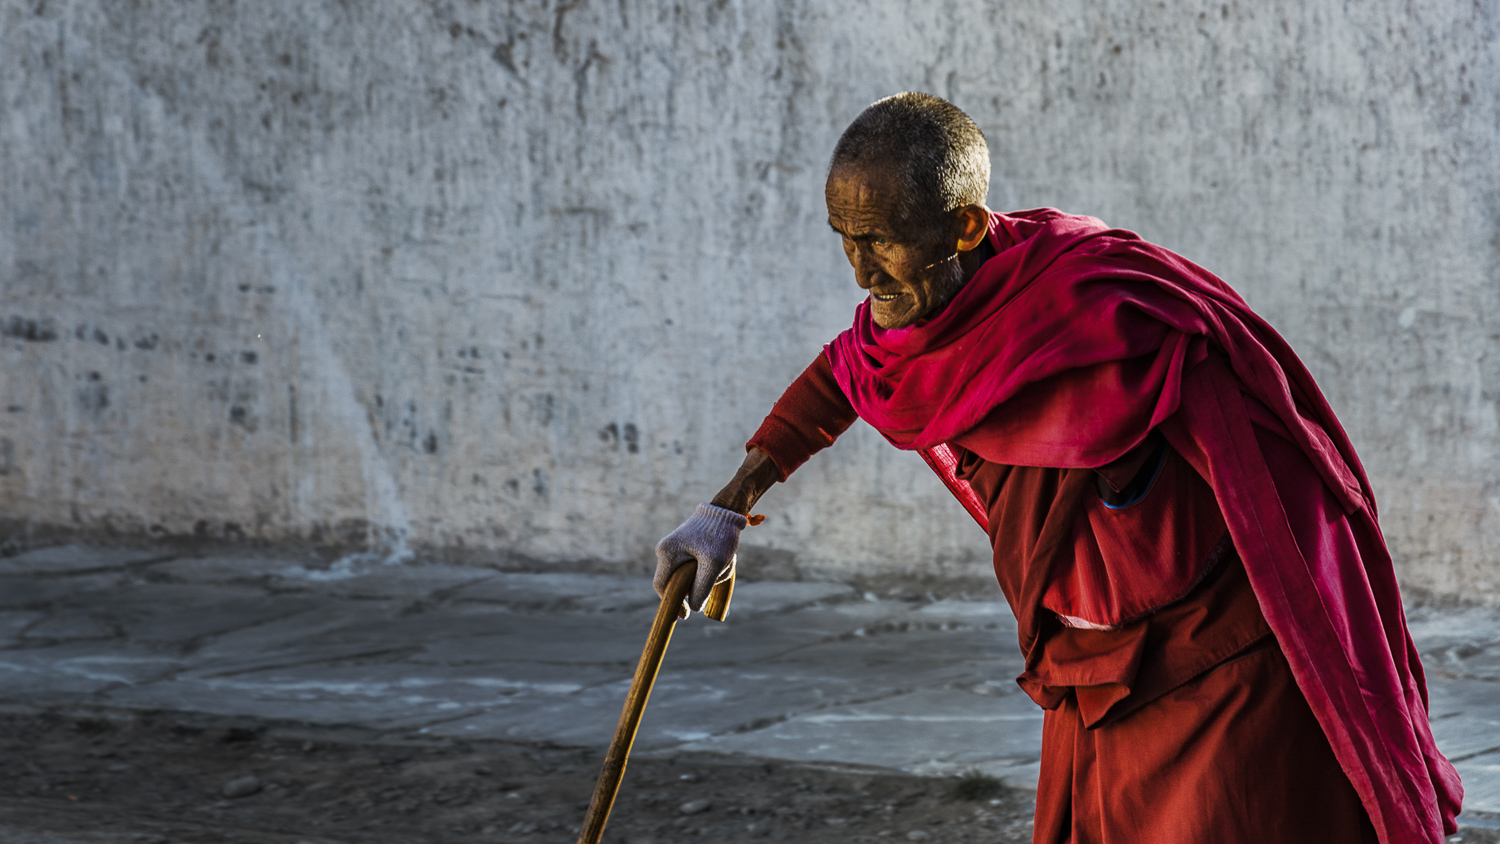 An old Monk in traditional clothes is walking the daily path around the Monastery Labrang in China